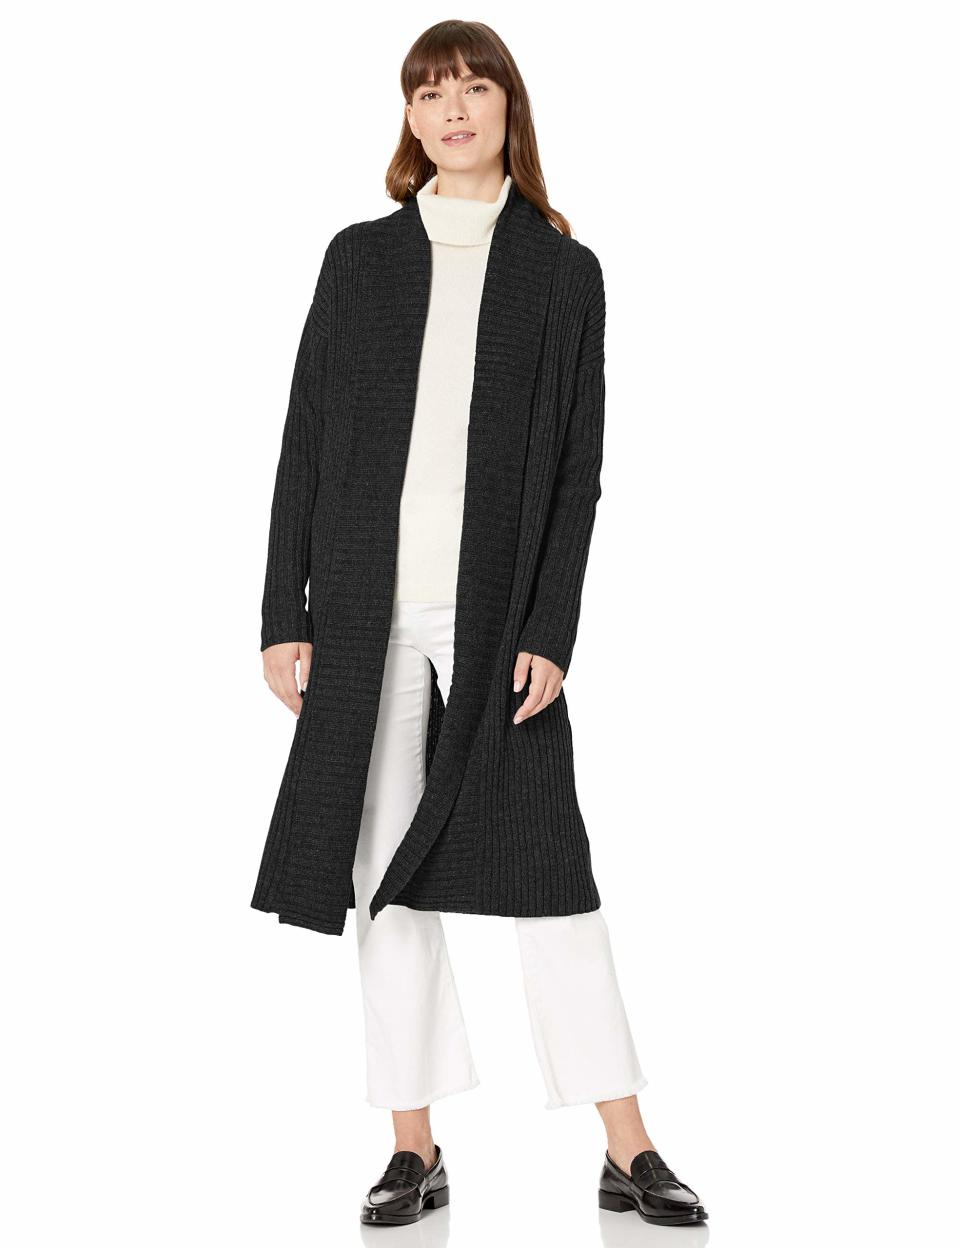 "<br><br><strong>Amazon Essentials</strong> Oversized Open Front Knee Length Sweater Coat, $, available at <a href=""https://amzn.to/2GOQOy7"" rel=""nofollow noopener"" target=""_blank"" data-ylk=""slk:Amazon Fashion"" class=""link rapid-noclick-resp"">Amazon Fashion</a>"